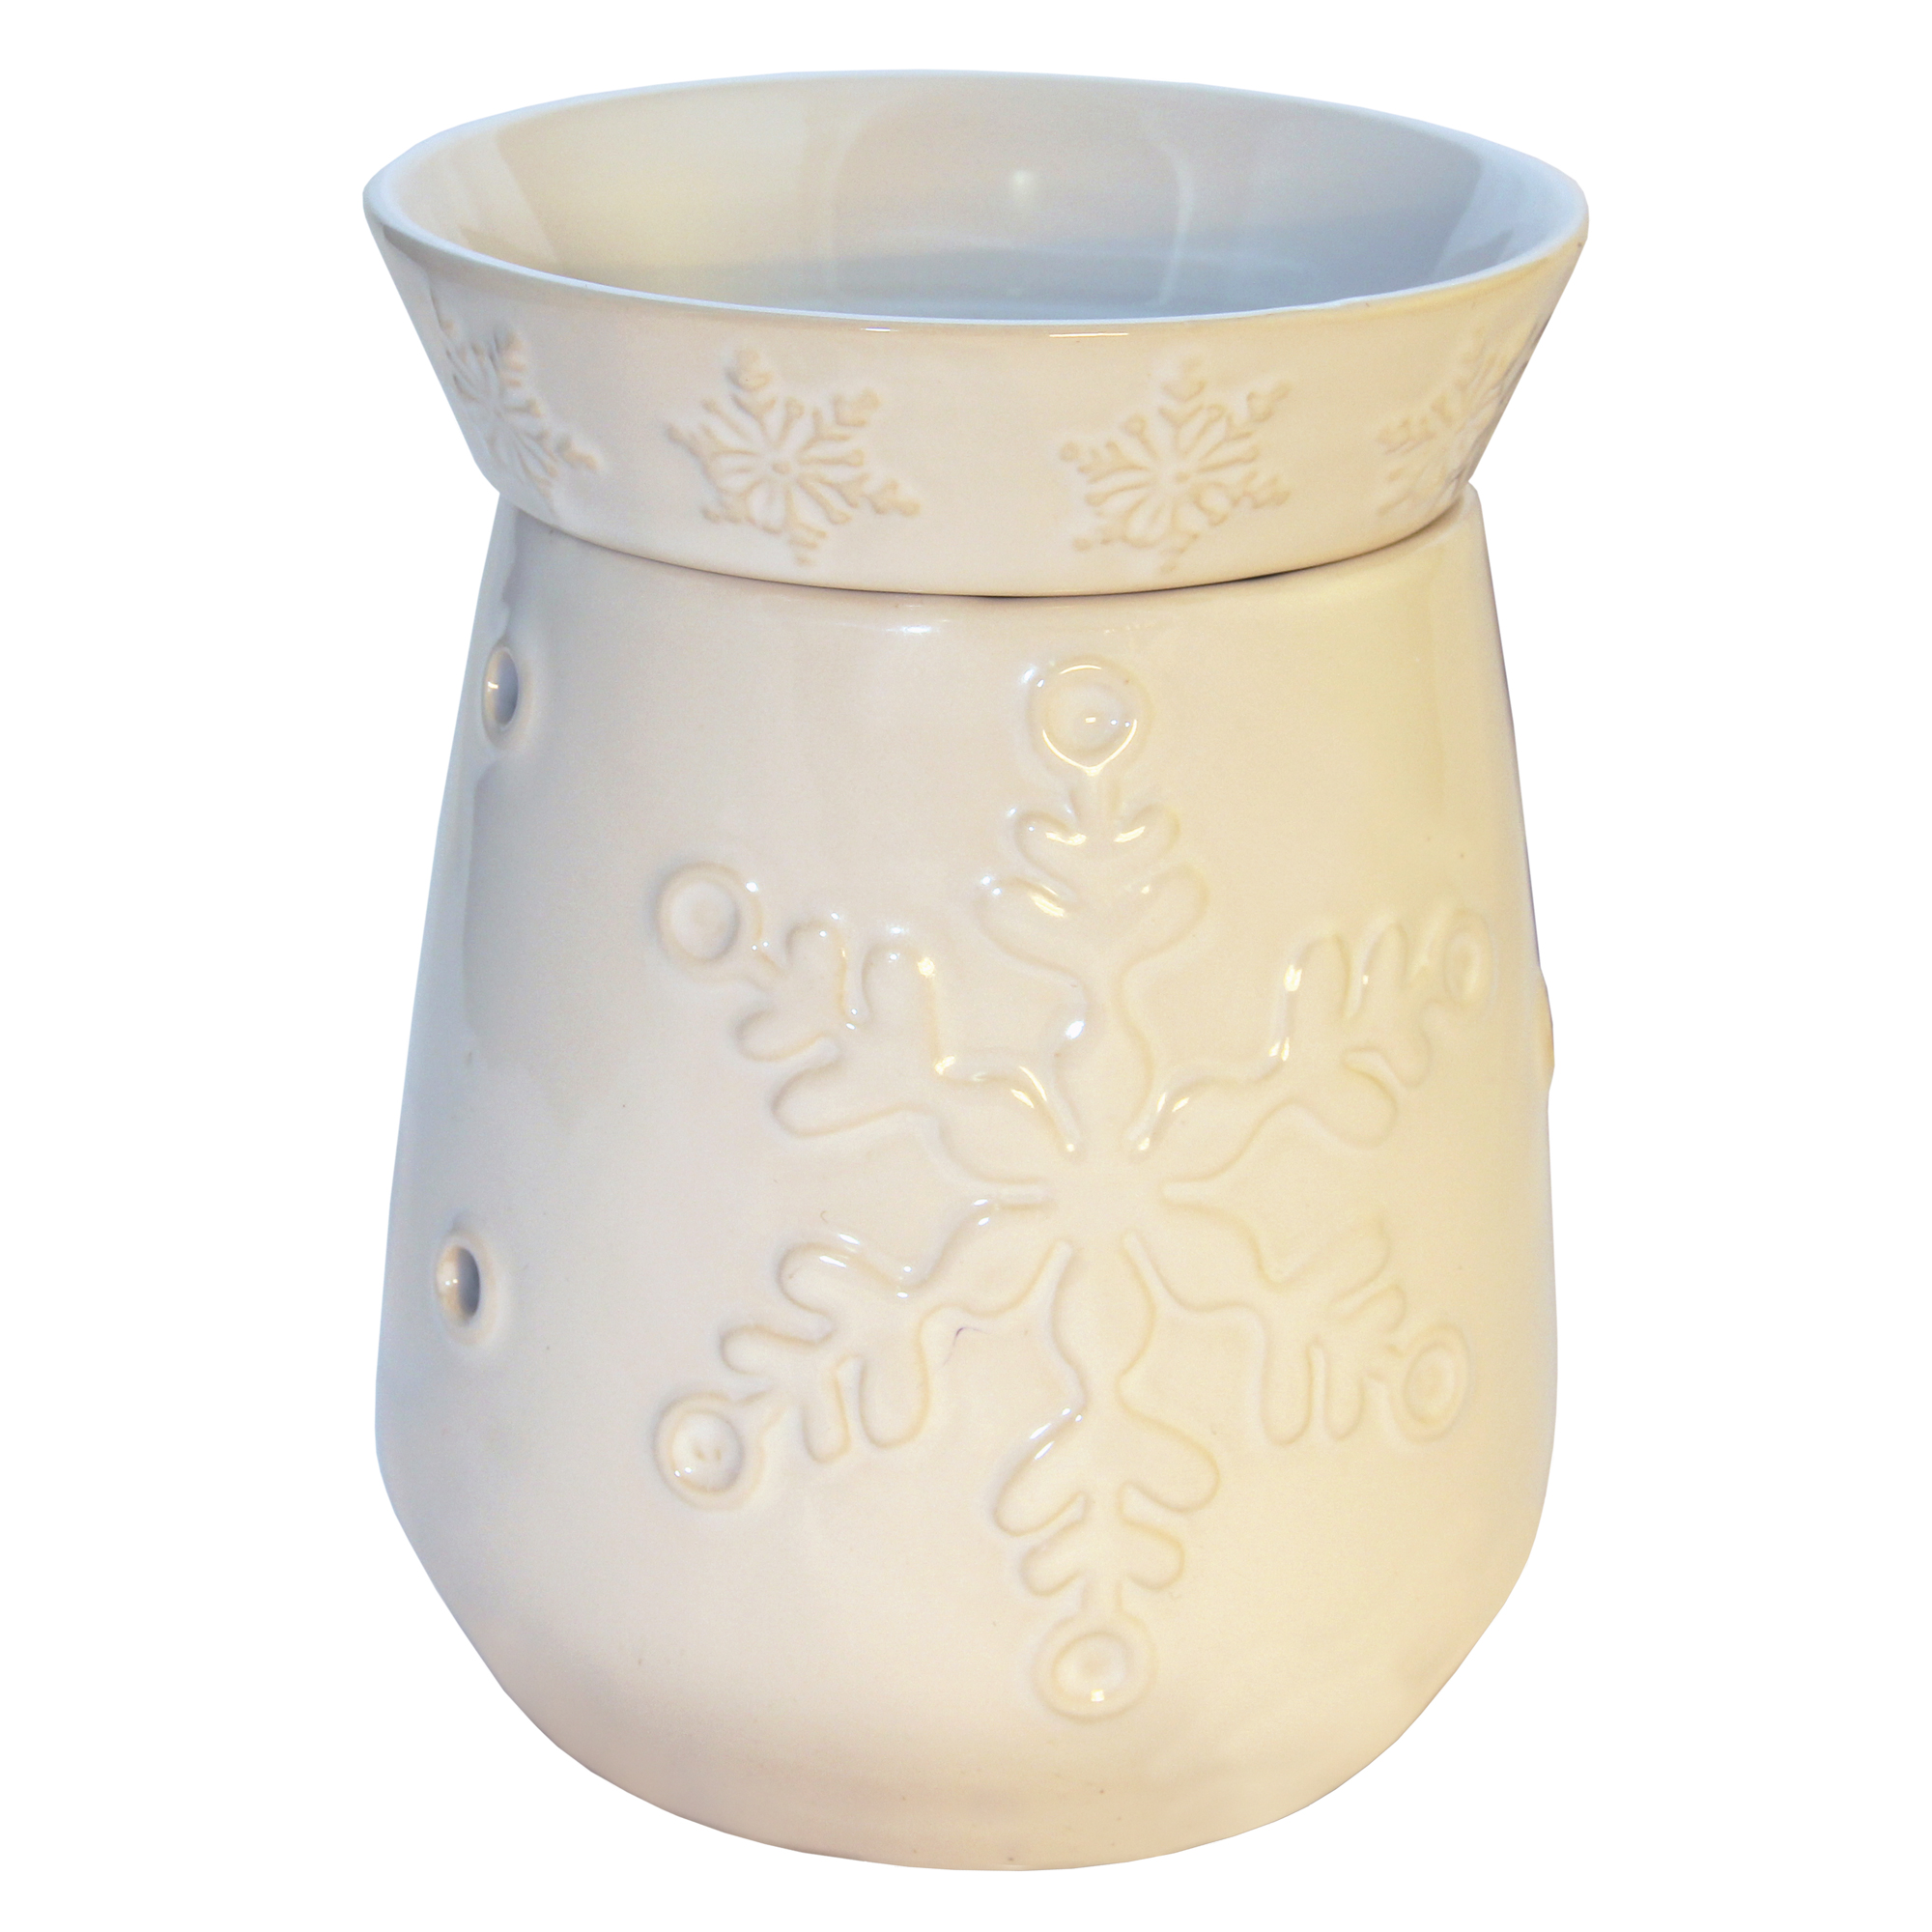 SNOWFLAKE TABLE TOP ELECTRIC WAX MELTER